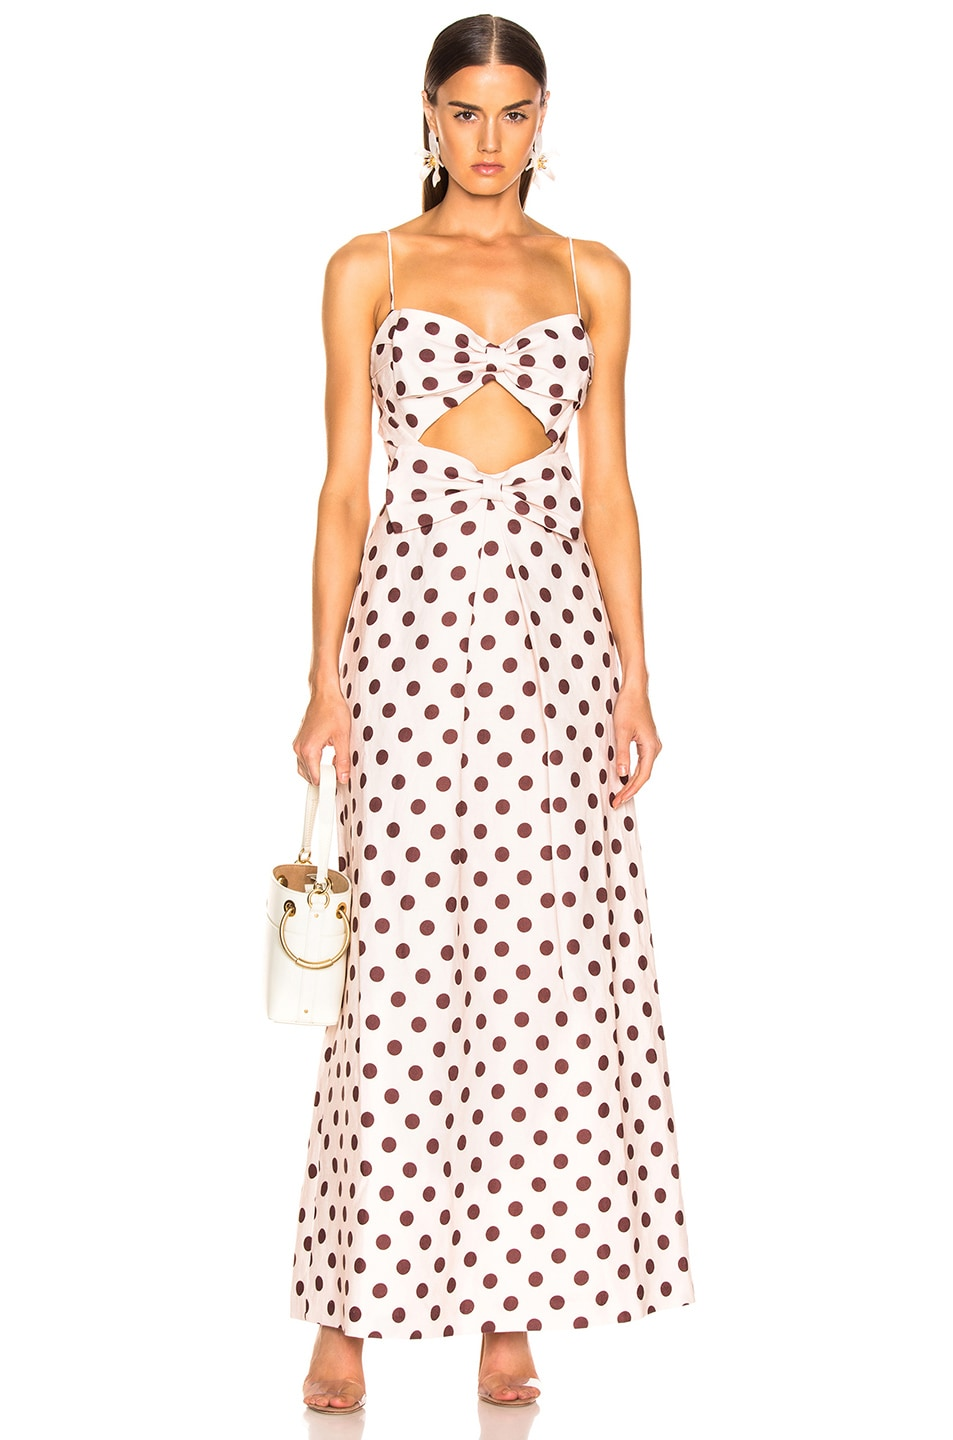 d866ae2a459 Image 1 of Zimmermann Corsage Bow Dress in Nude   Cocoa Dot